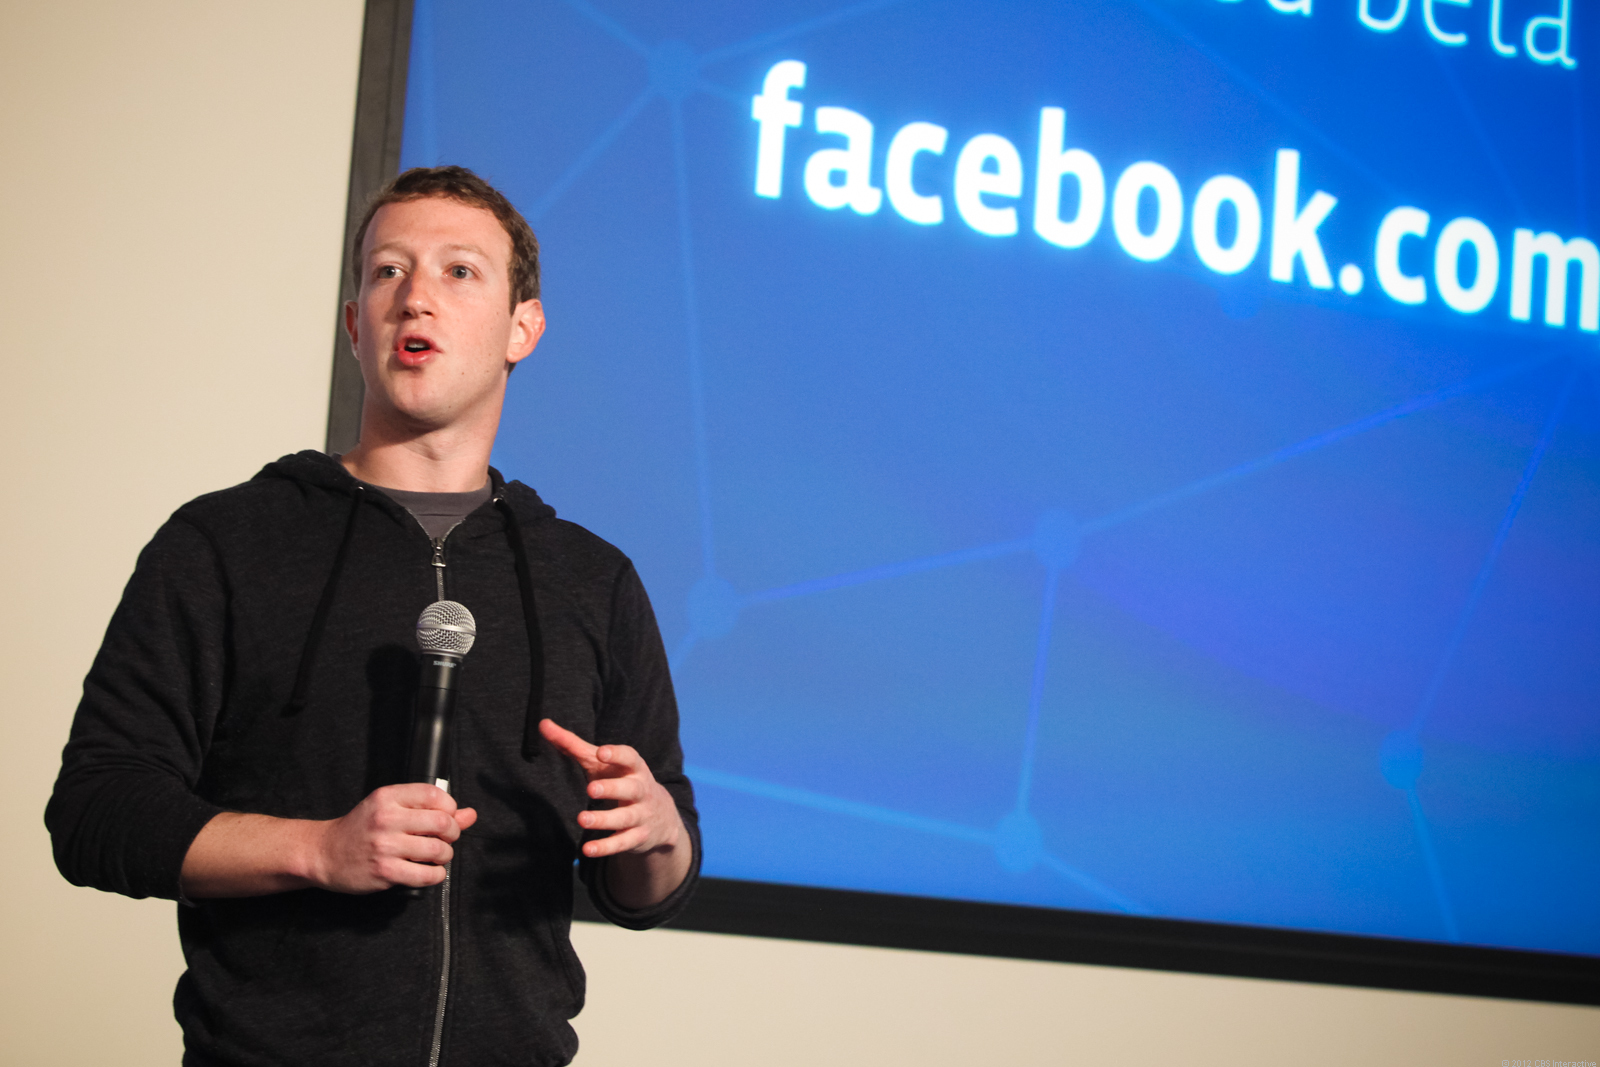 Facebook once lauded a controversial information-sharing bill named CISPA, resulting in a petition aimed at convincing CEO Mark Zuckerberg otherwise. The company has since changed its position.